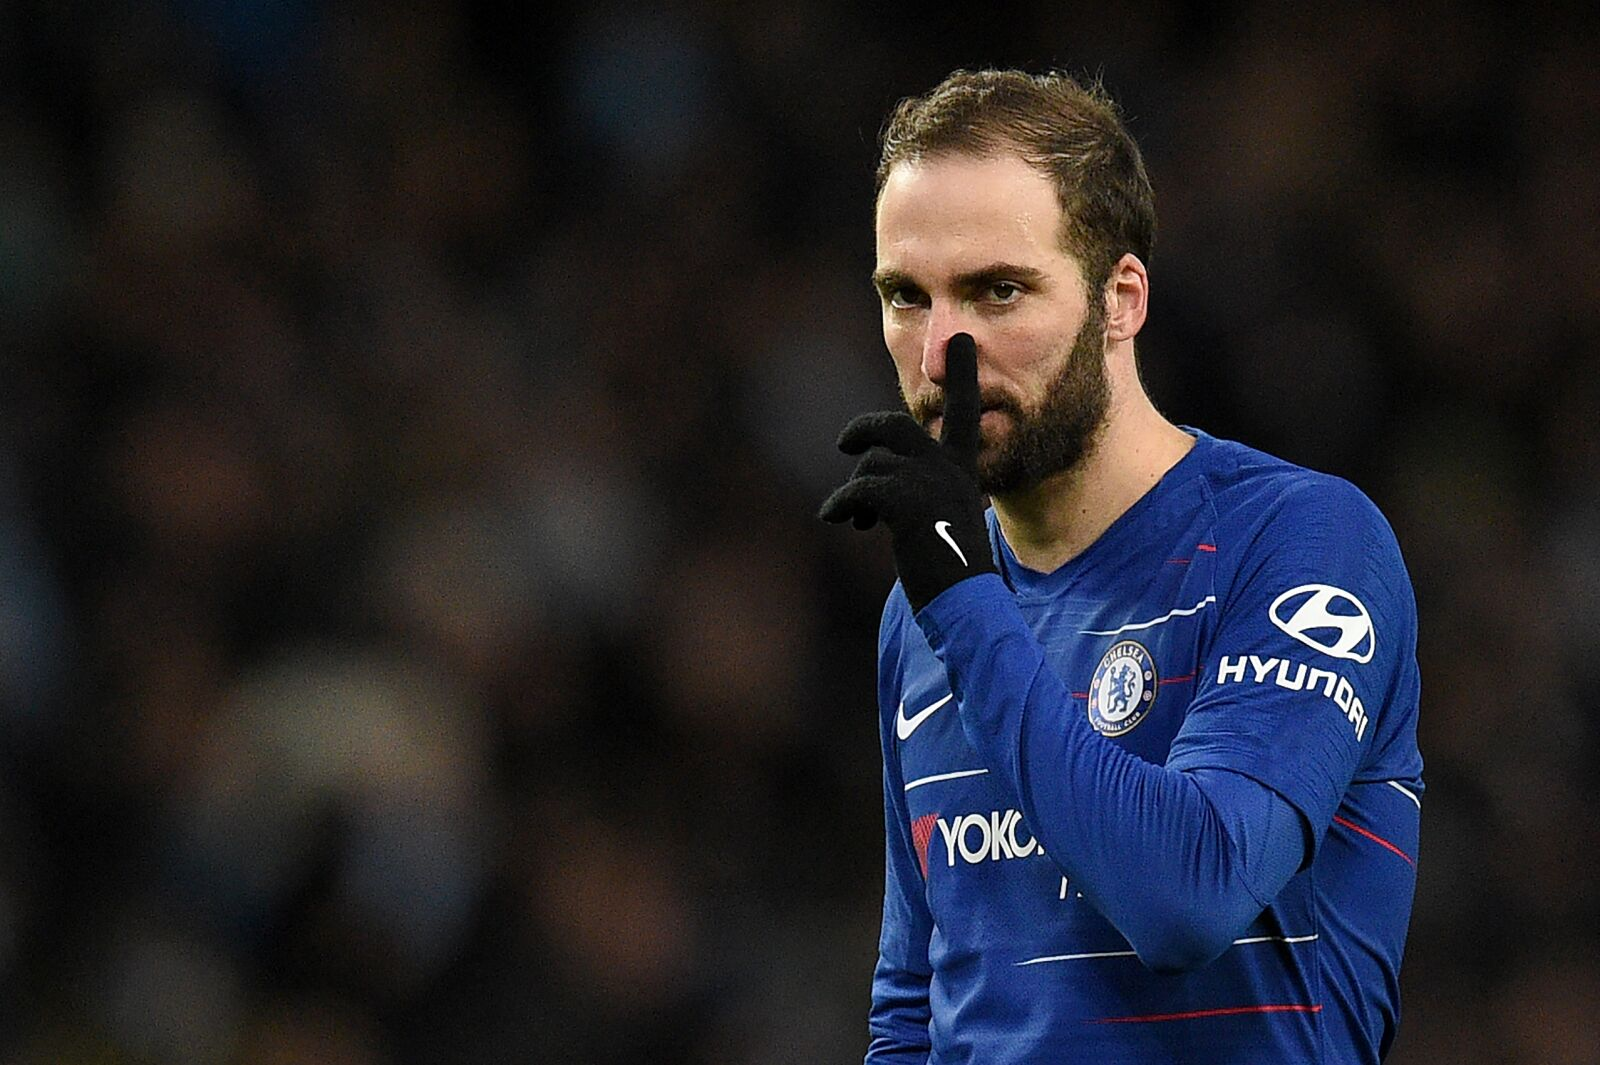 Chelsea seems to have already given up on Gonzalo Higuain